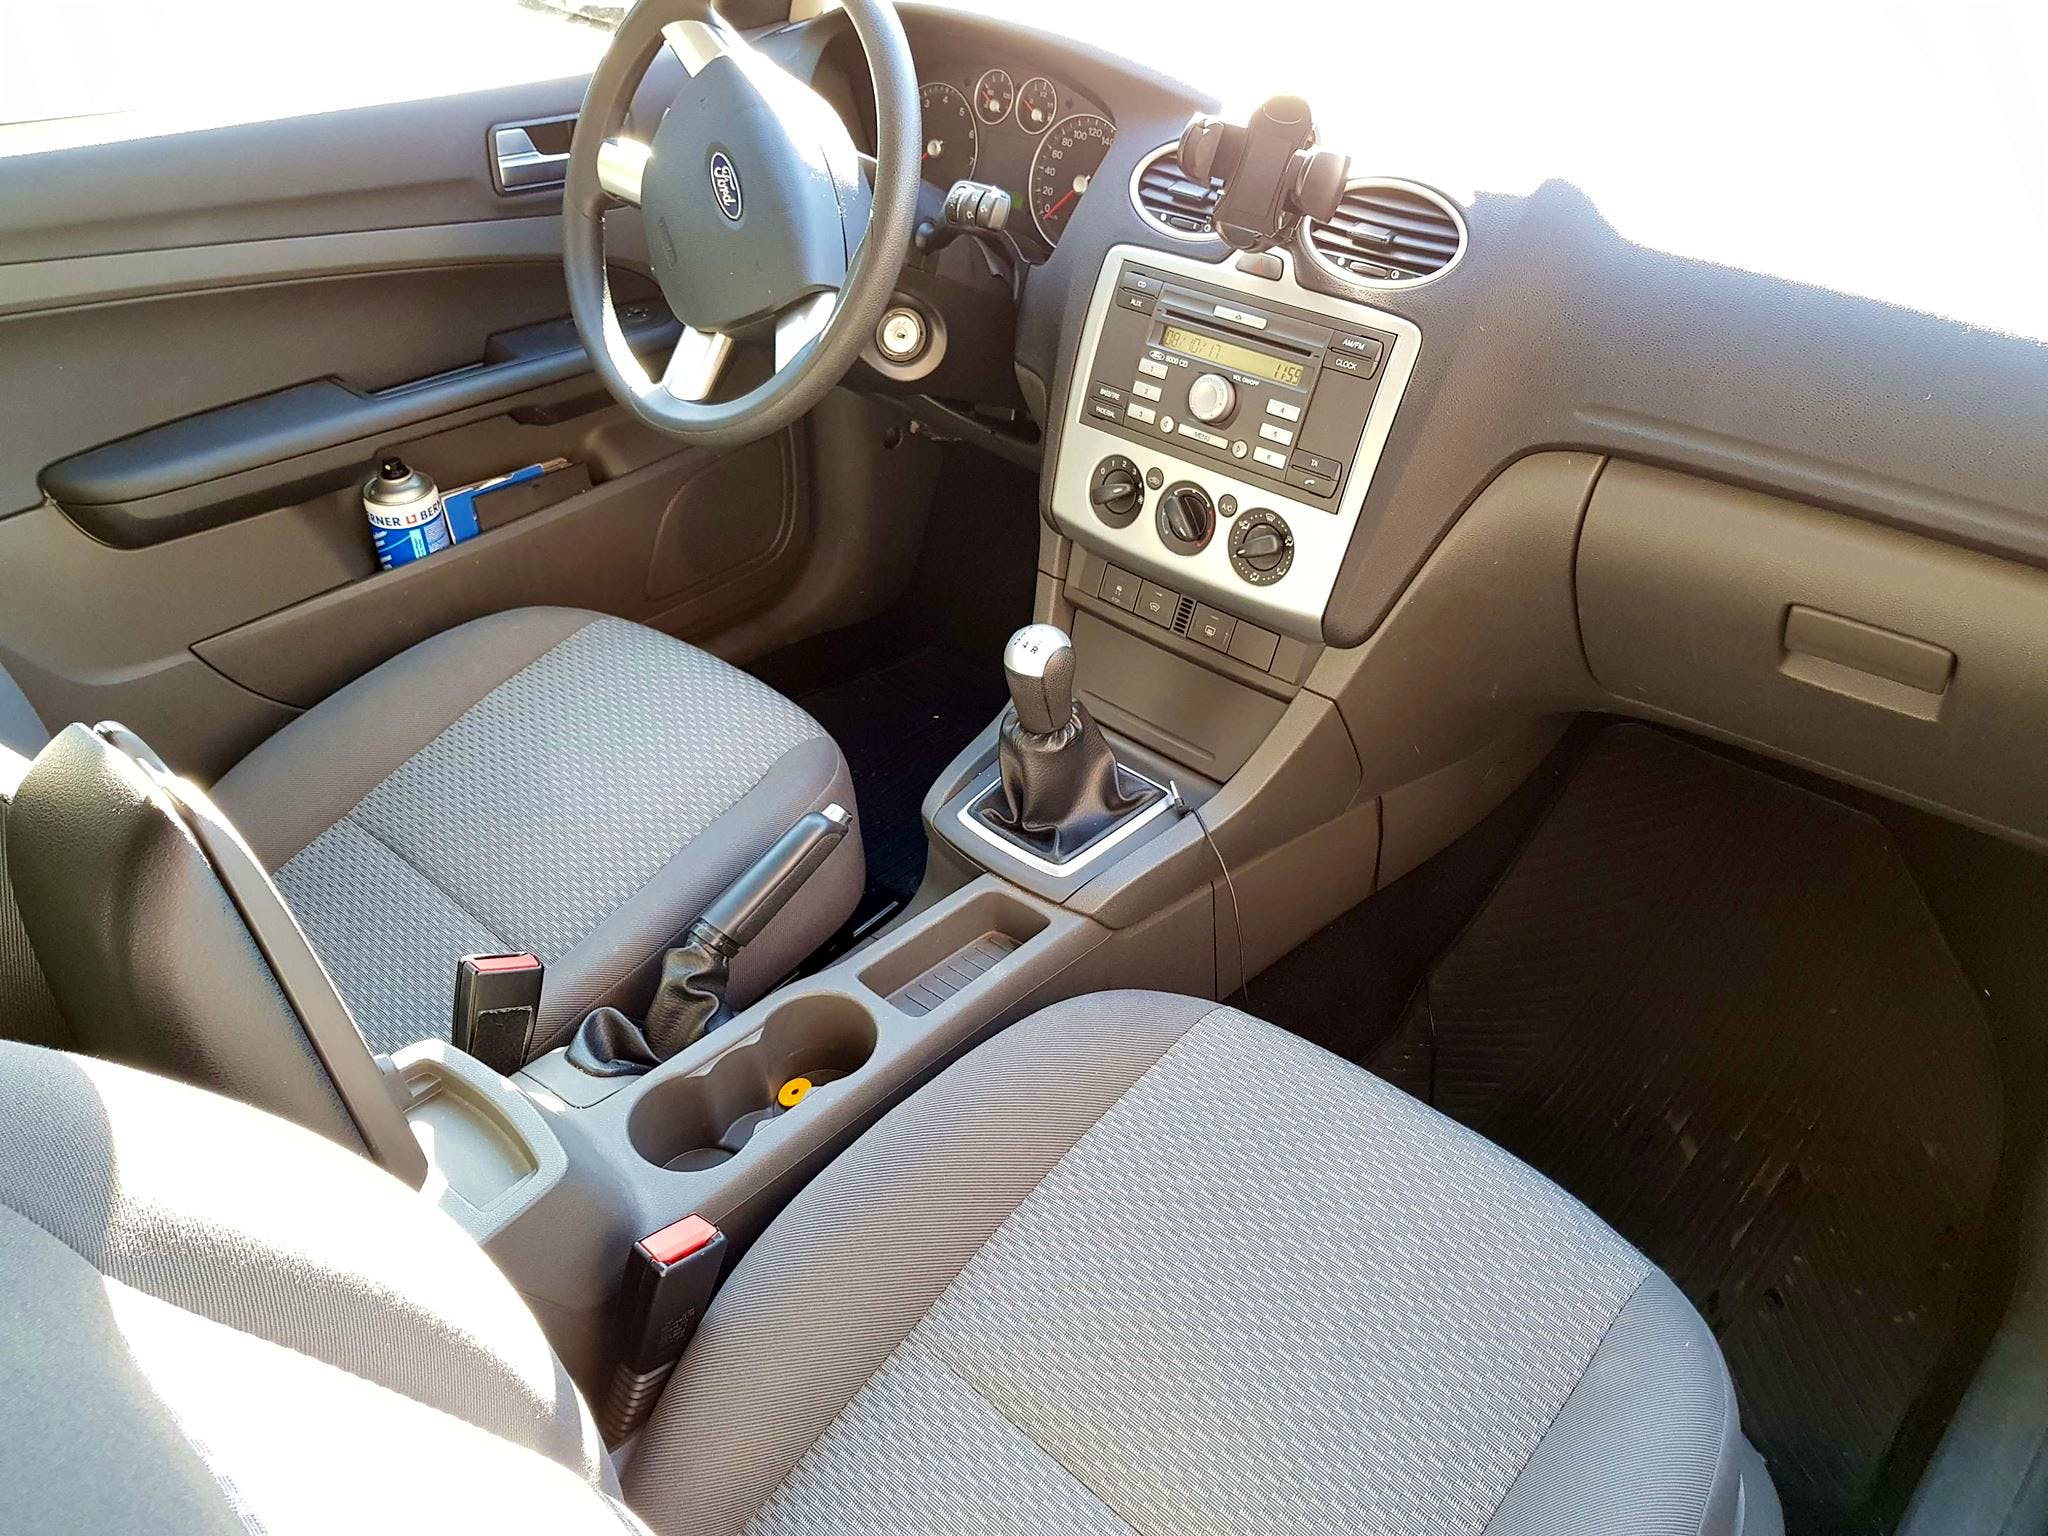 Ford Focus 1.8 - 125 PS